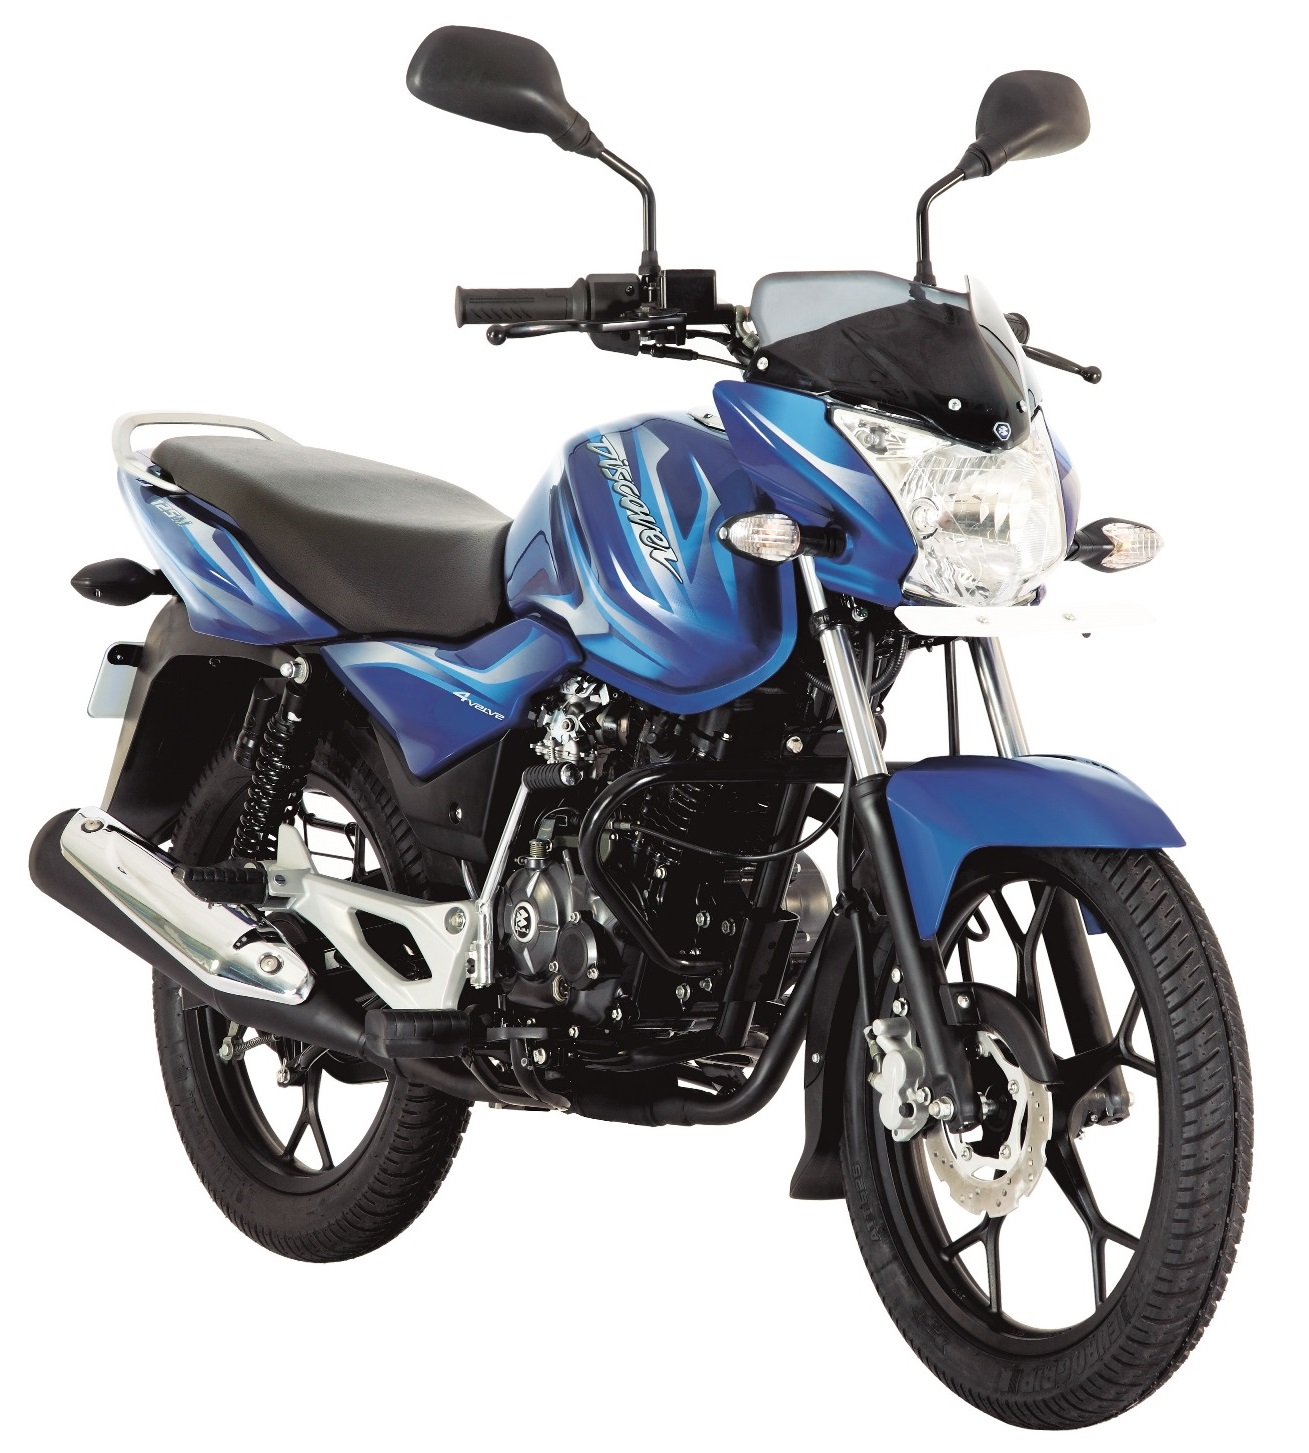 two wheeler technologies In the two-wheeler and powersports technology segment, bosch offers suitable assistance systems, connectivity solutions, and systems both for fuel-combustion and electric powertrains connectivity systems: bosch connects two-wheelers to the outside world.